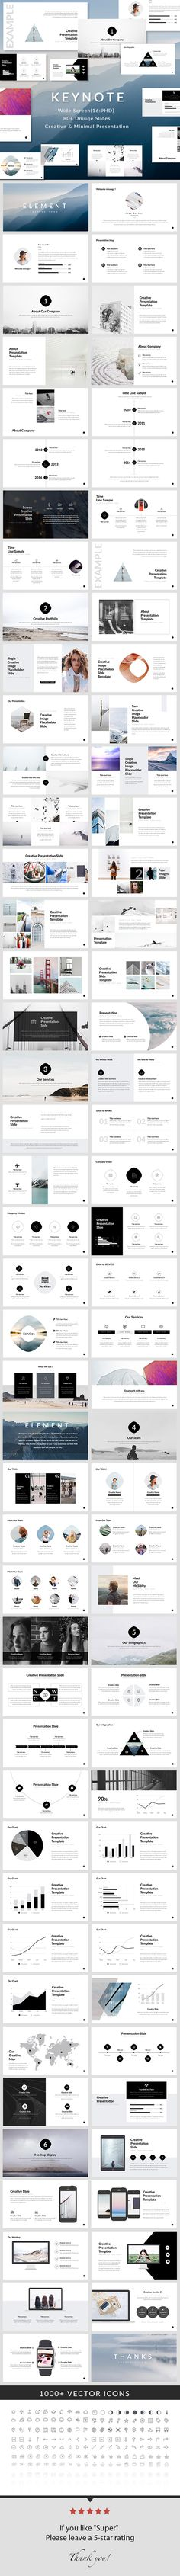 Element - Keynote Presentation Template